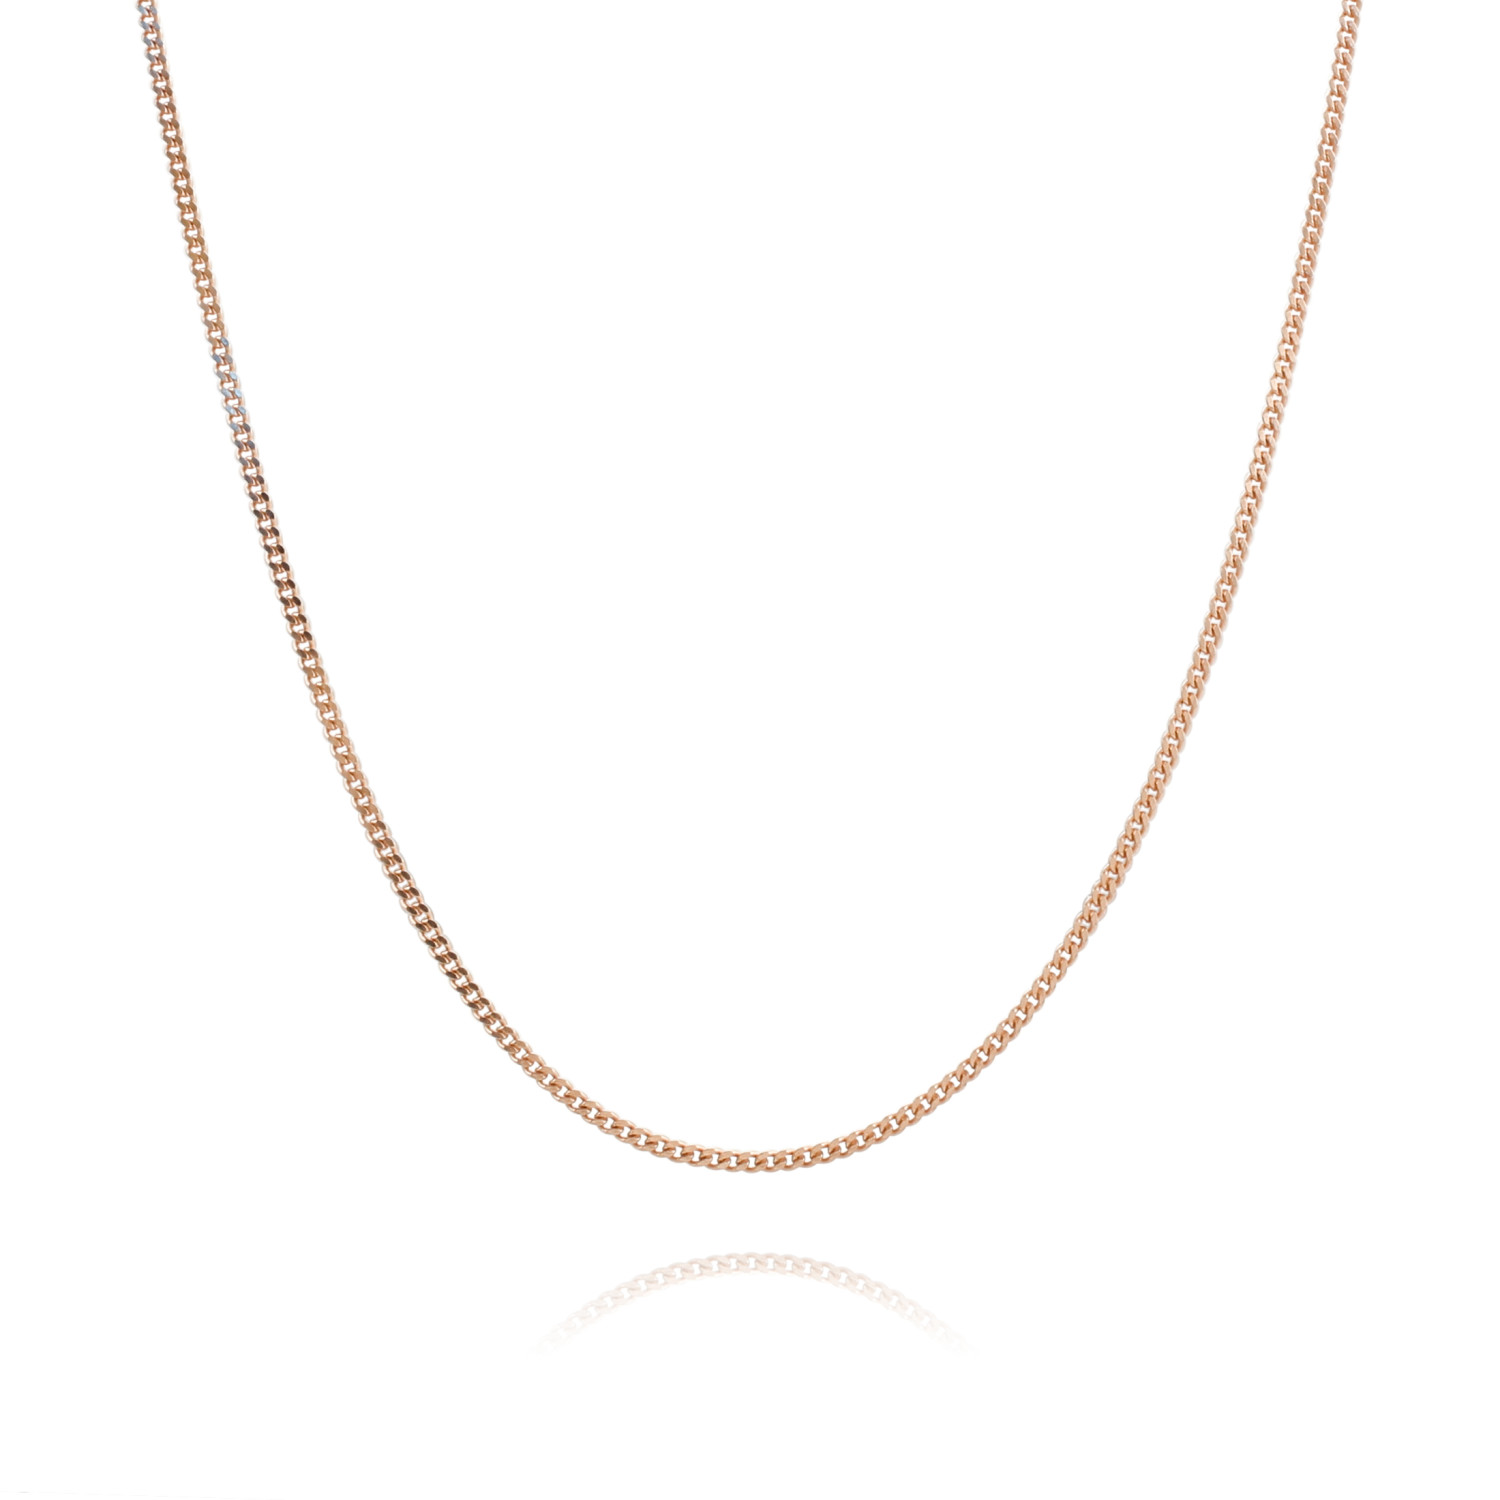 9ct Rose Gold Plated On Sterling Silver 1 2mm Curb Chain